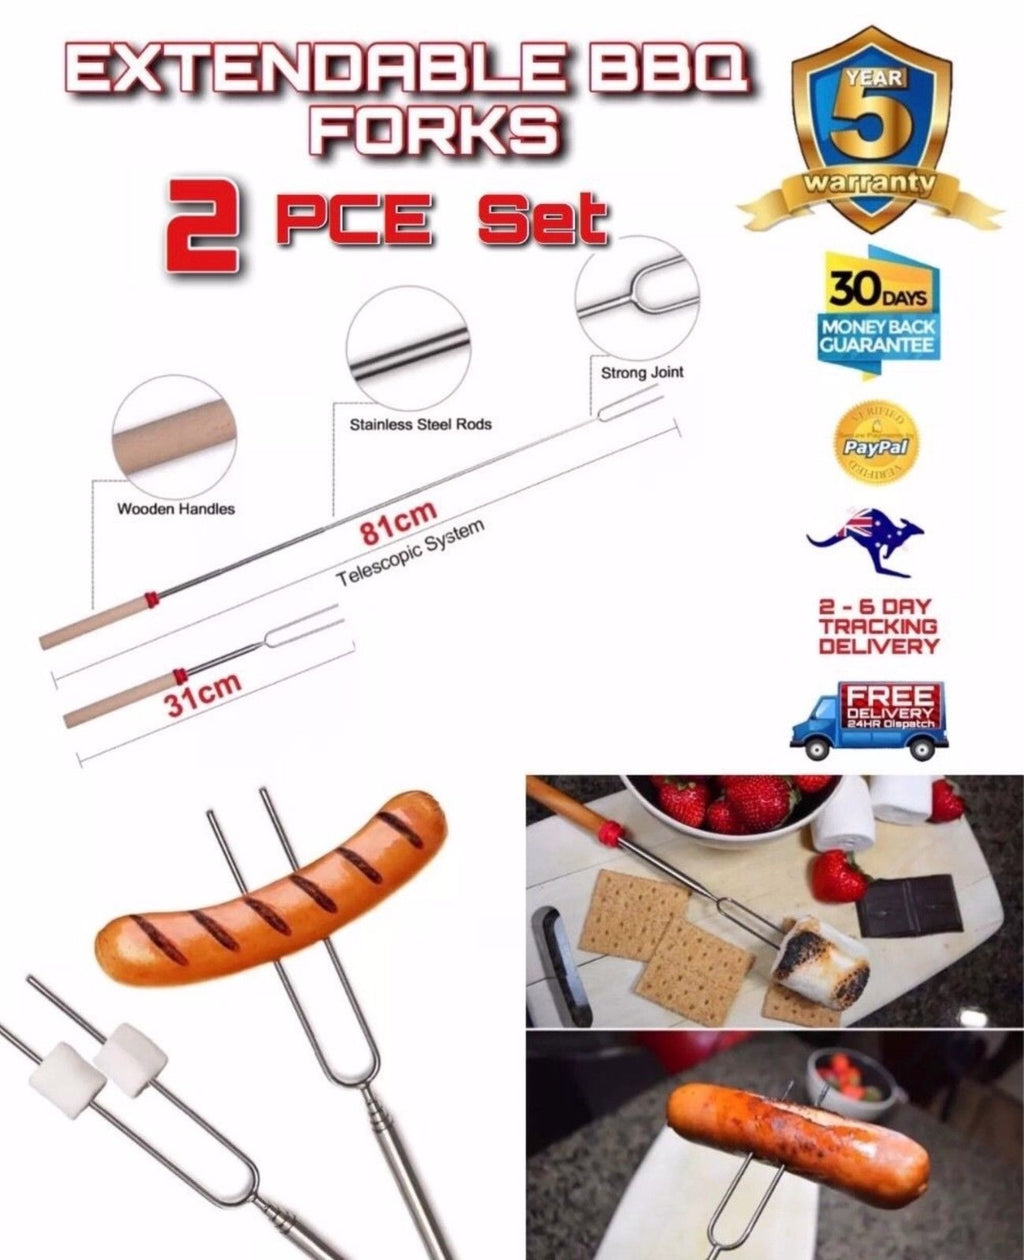 2 PCE BBQ Extendable Telescopic Marshmallows Sausage Roasting Forks - Outback Tactical